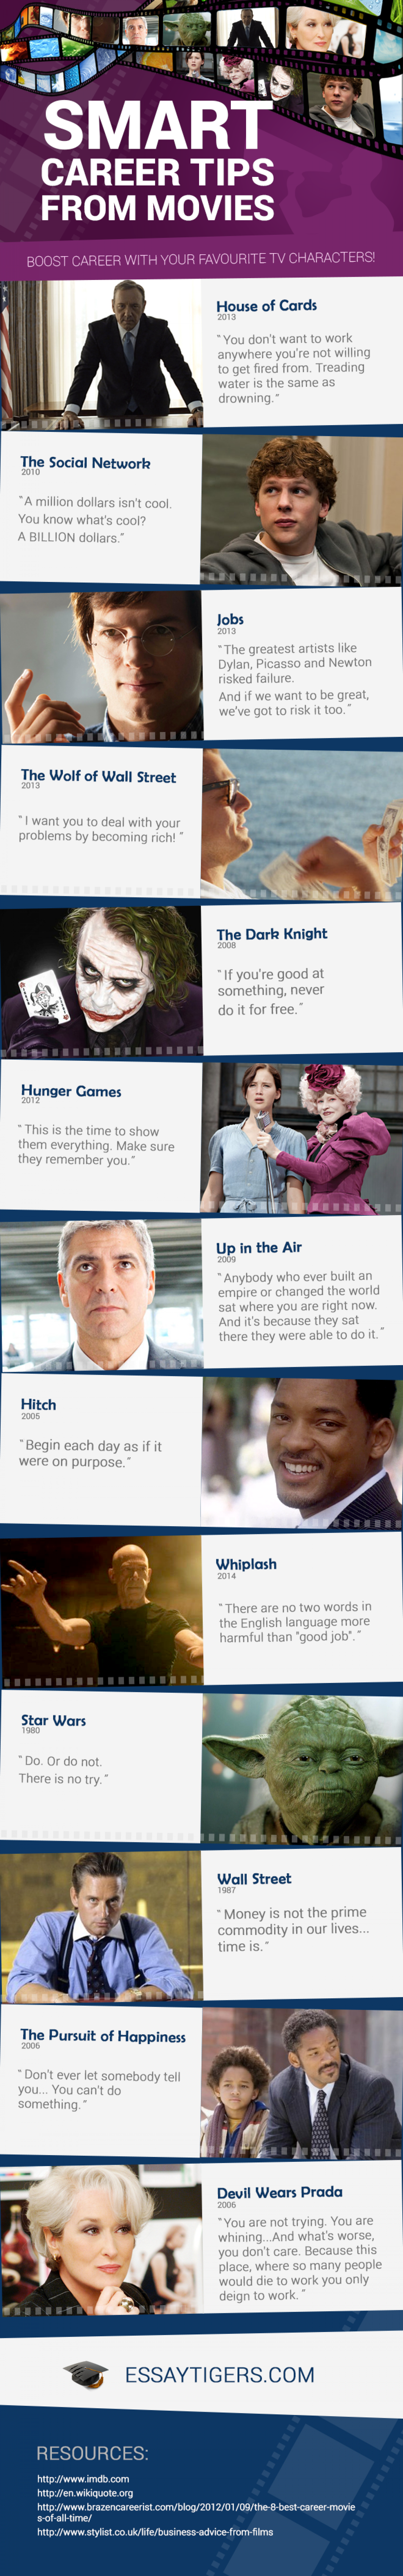 Smart Career Tips from Movies Infographic